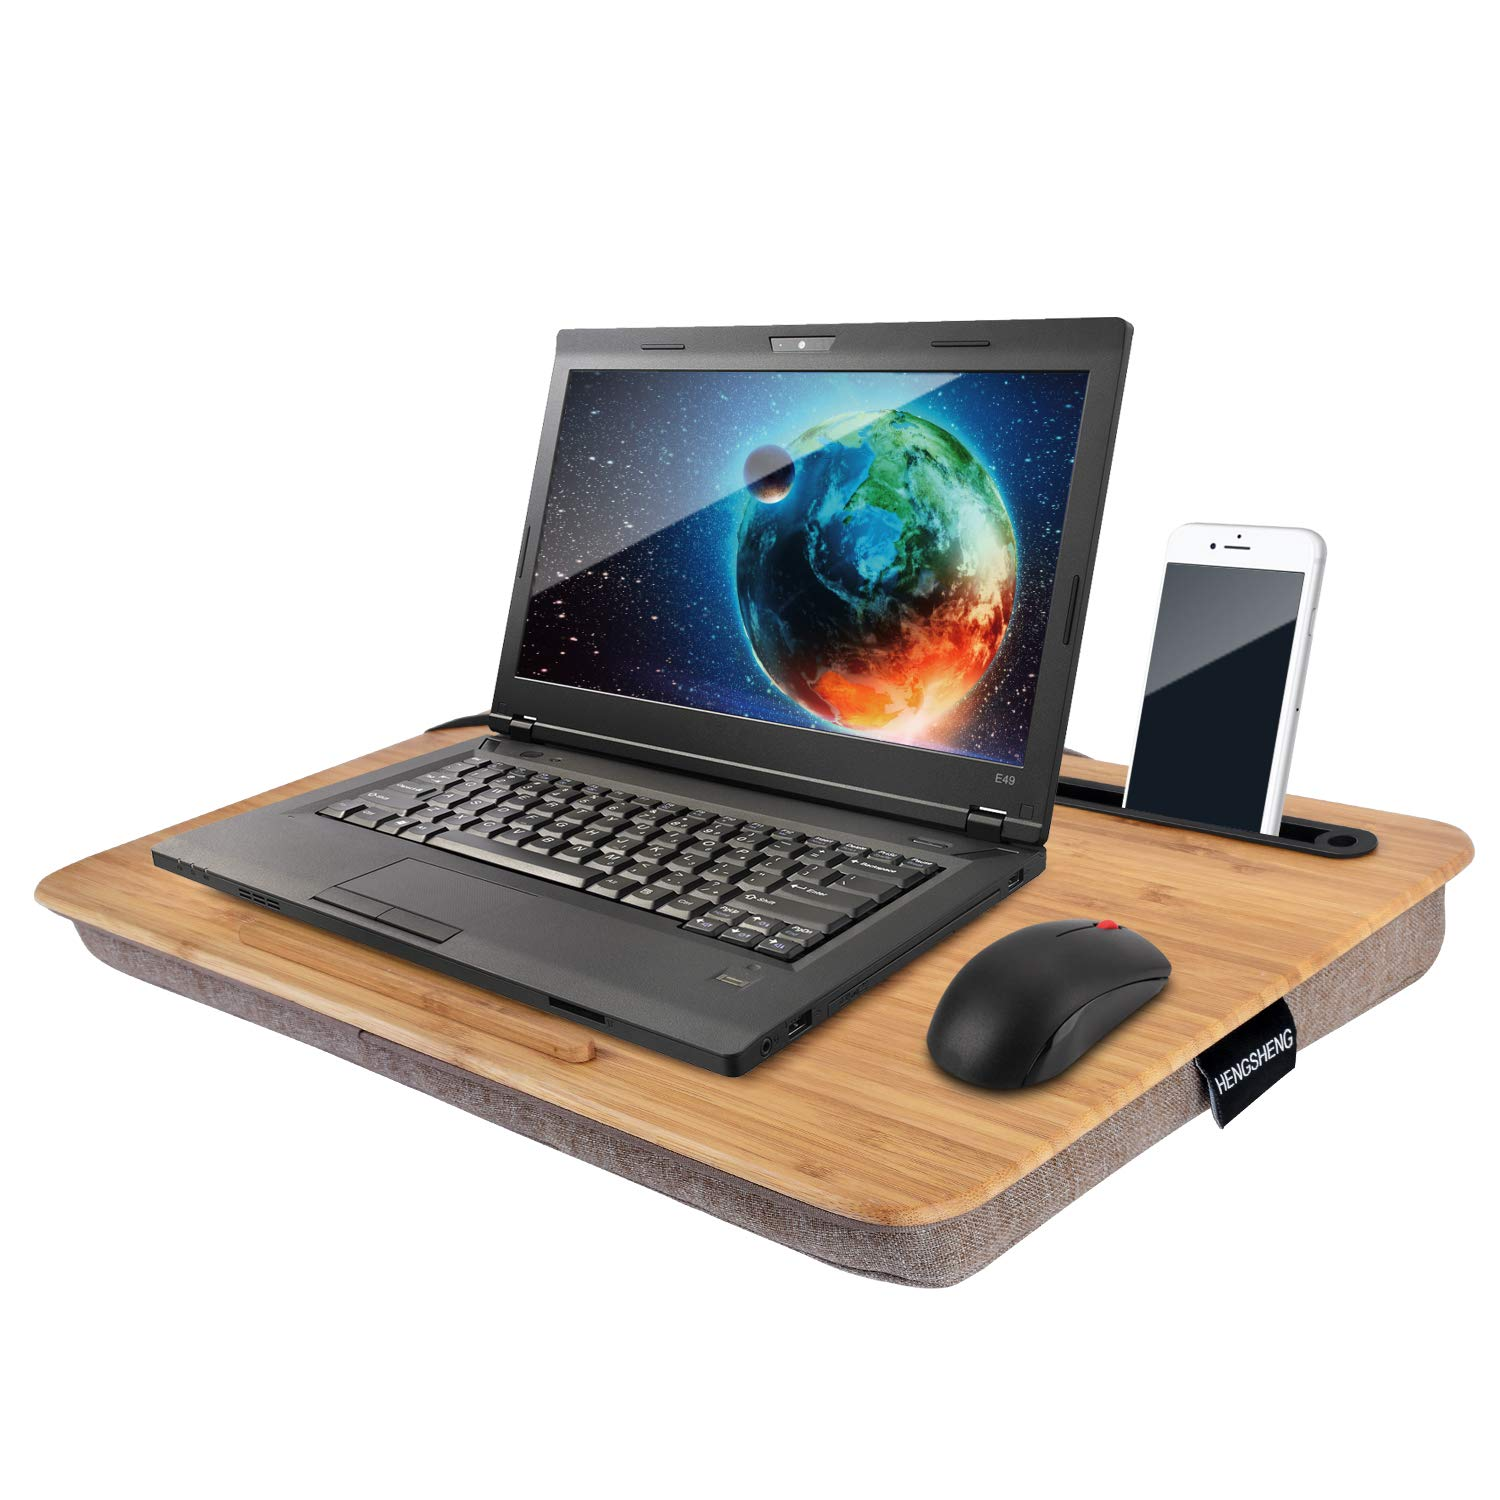 "Home Office Lap Desk-HENGSHENG Portable Bamboo Laptop Lap Desk Accessories (Fits up to 17.3"" Laptop)"